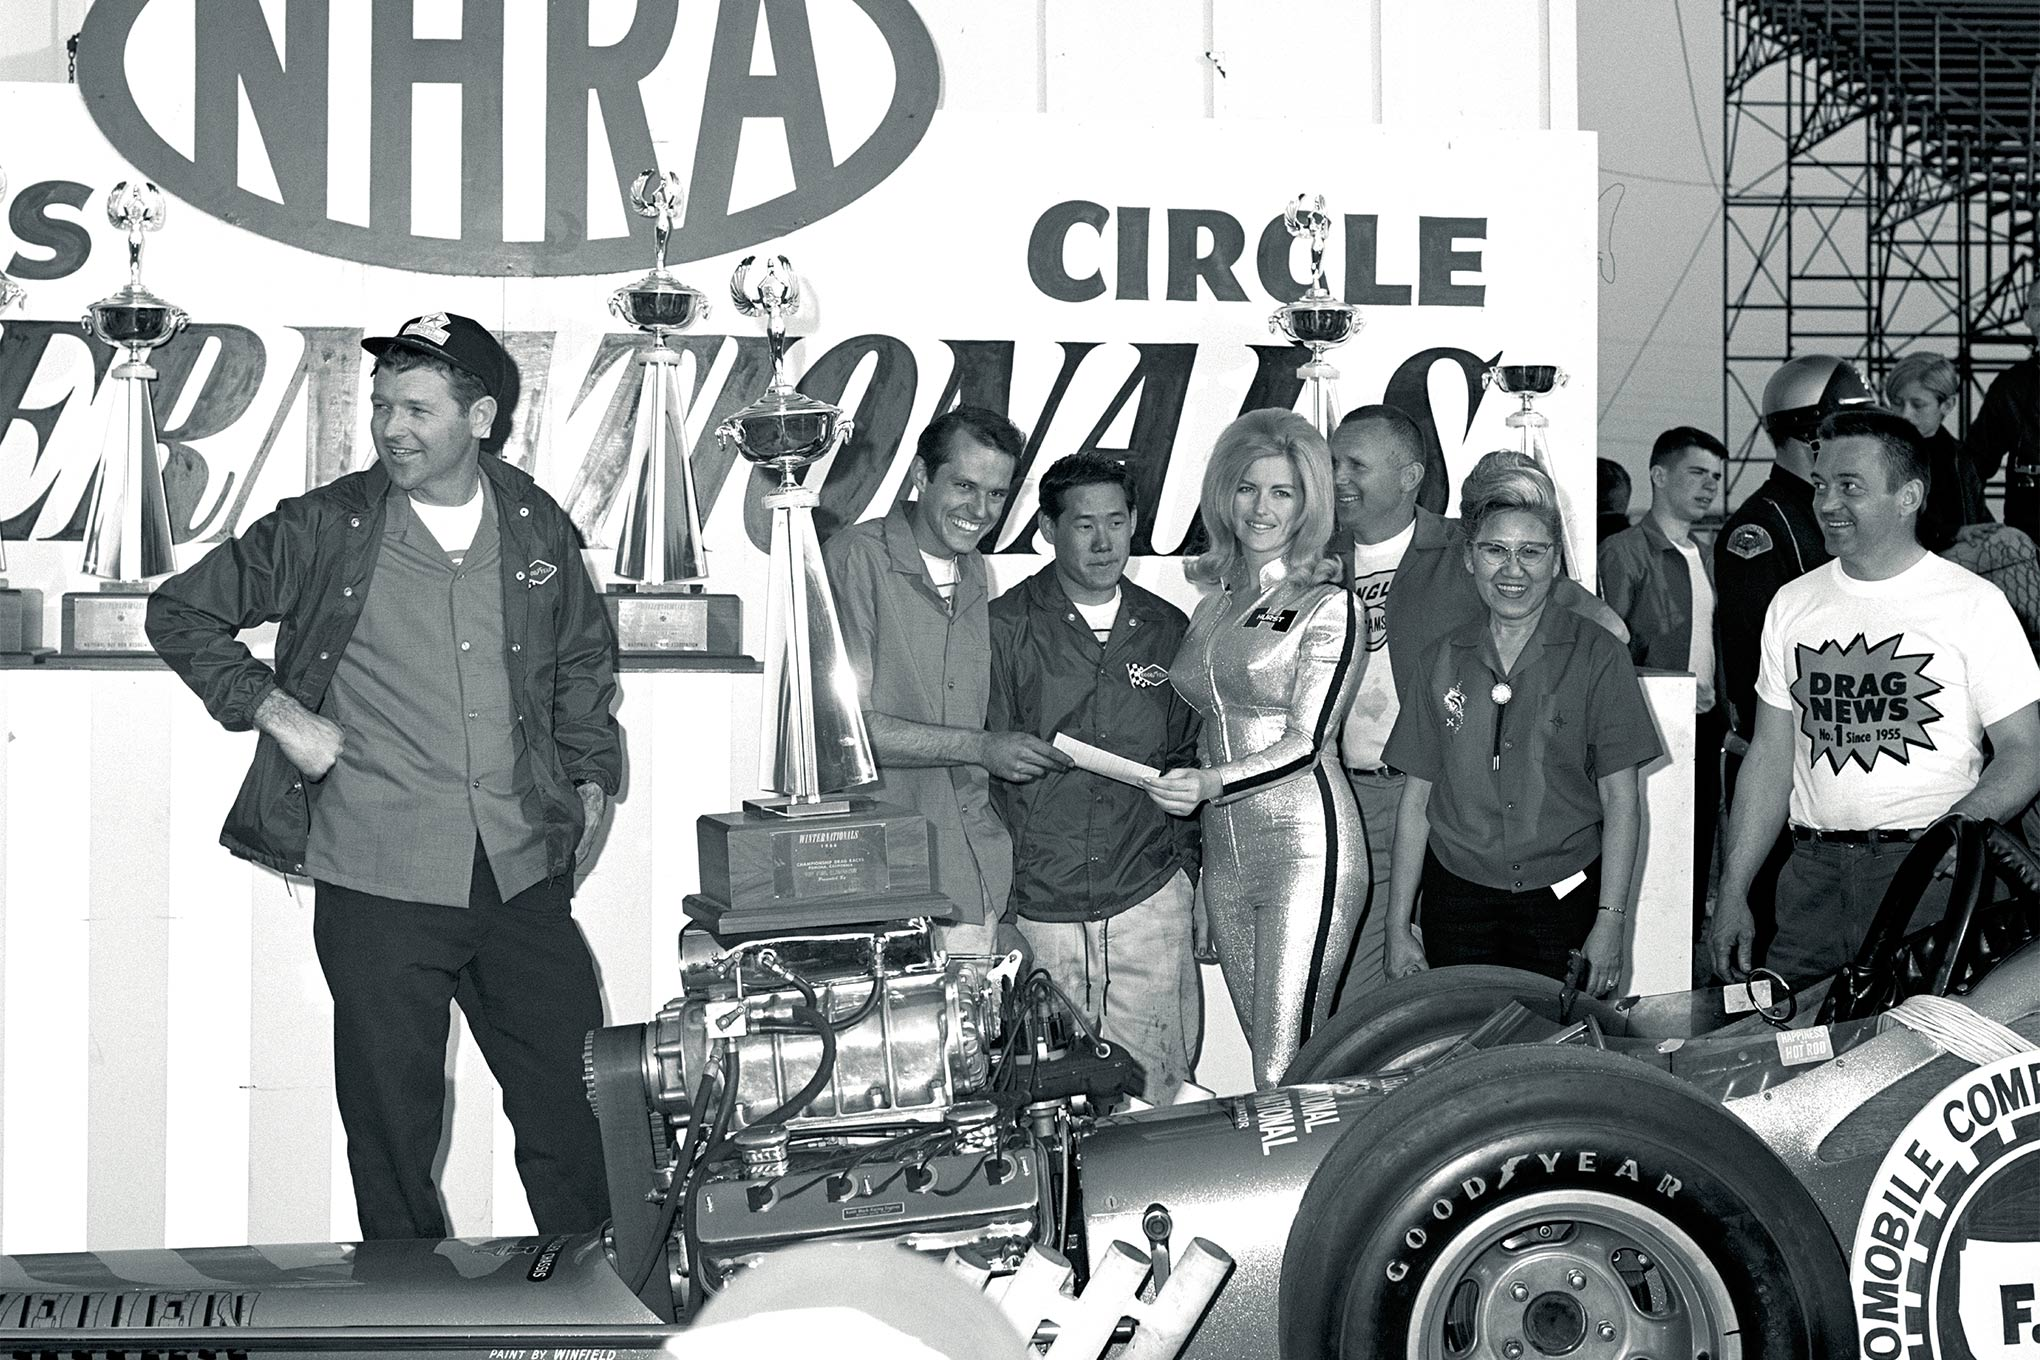 Mike Snively getting his winning check from Miss Hurst Linda Vaughn at the 1966 NHRA Winternationals. From left are Keith Black, Snively, Leong, Vaughn, Hanson and Roland's mom Teddy.